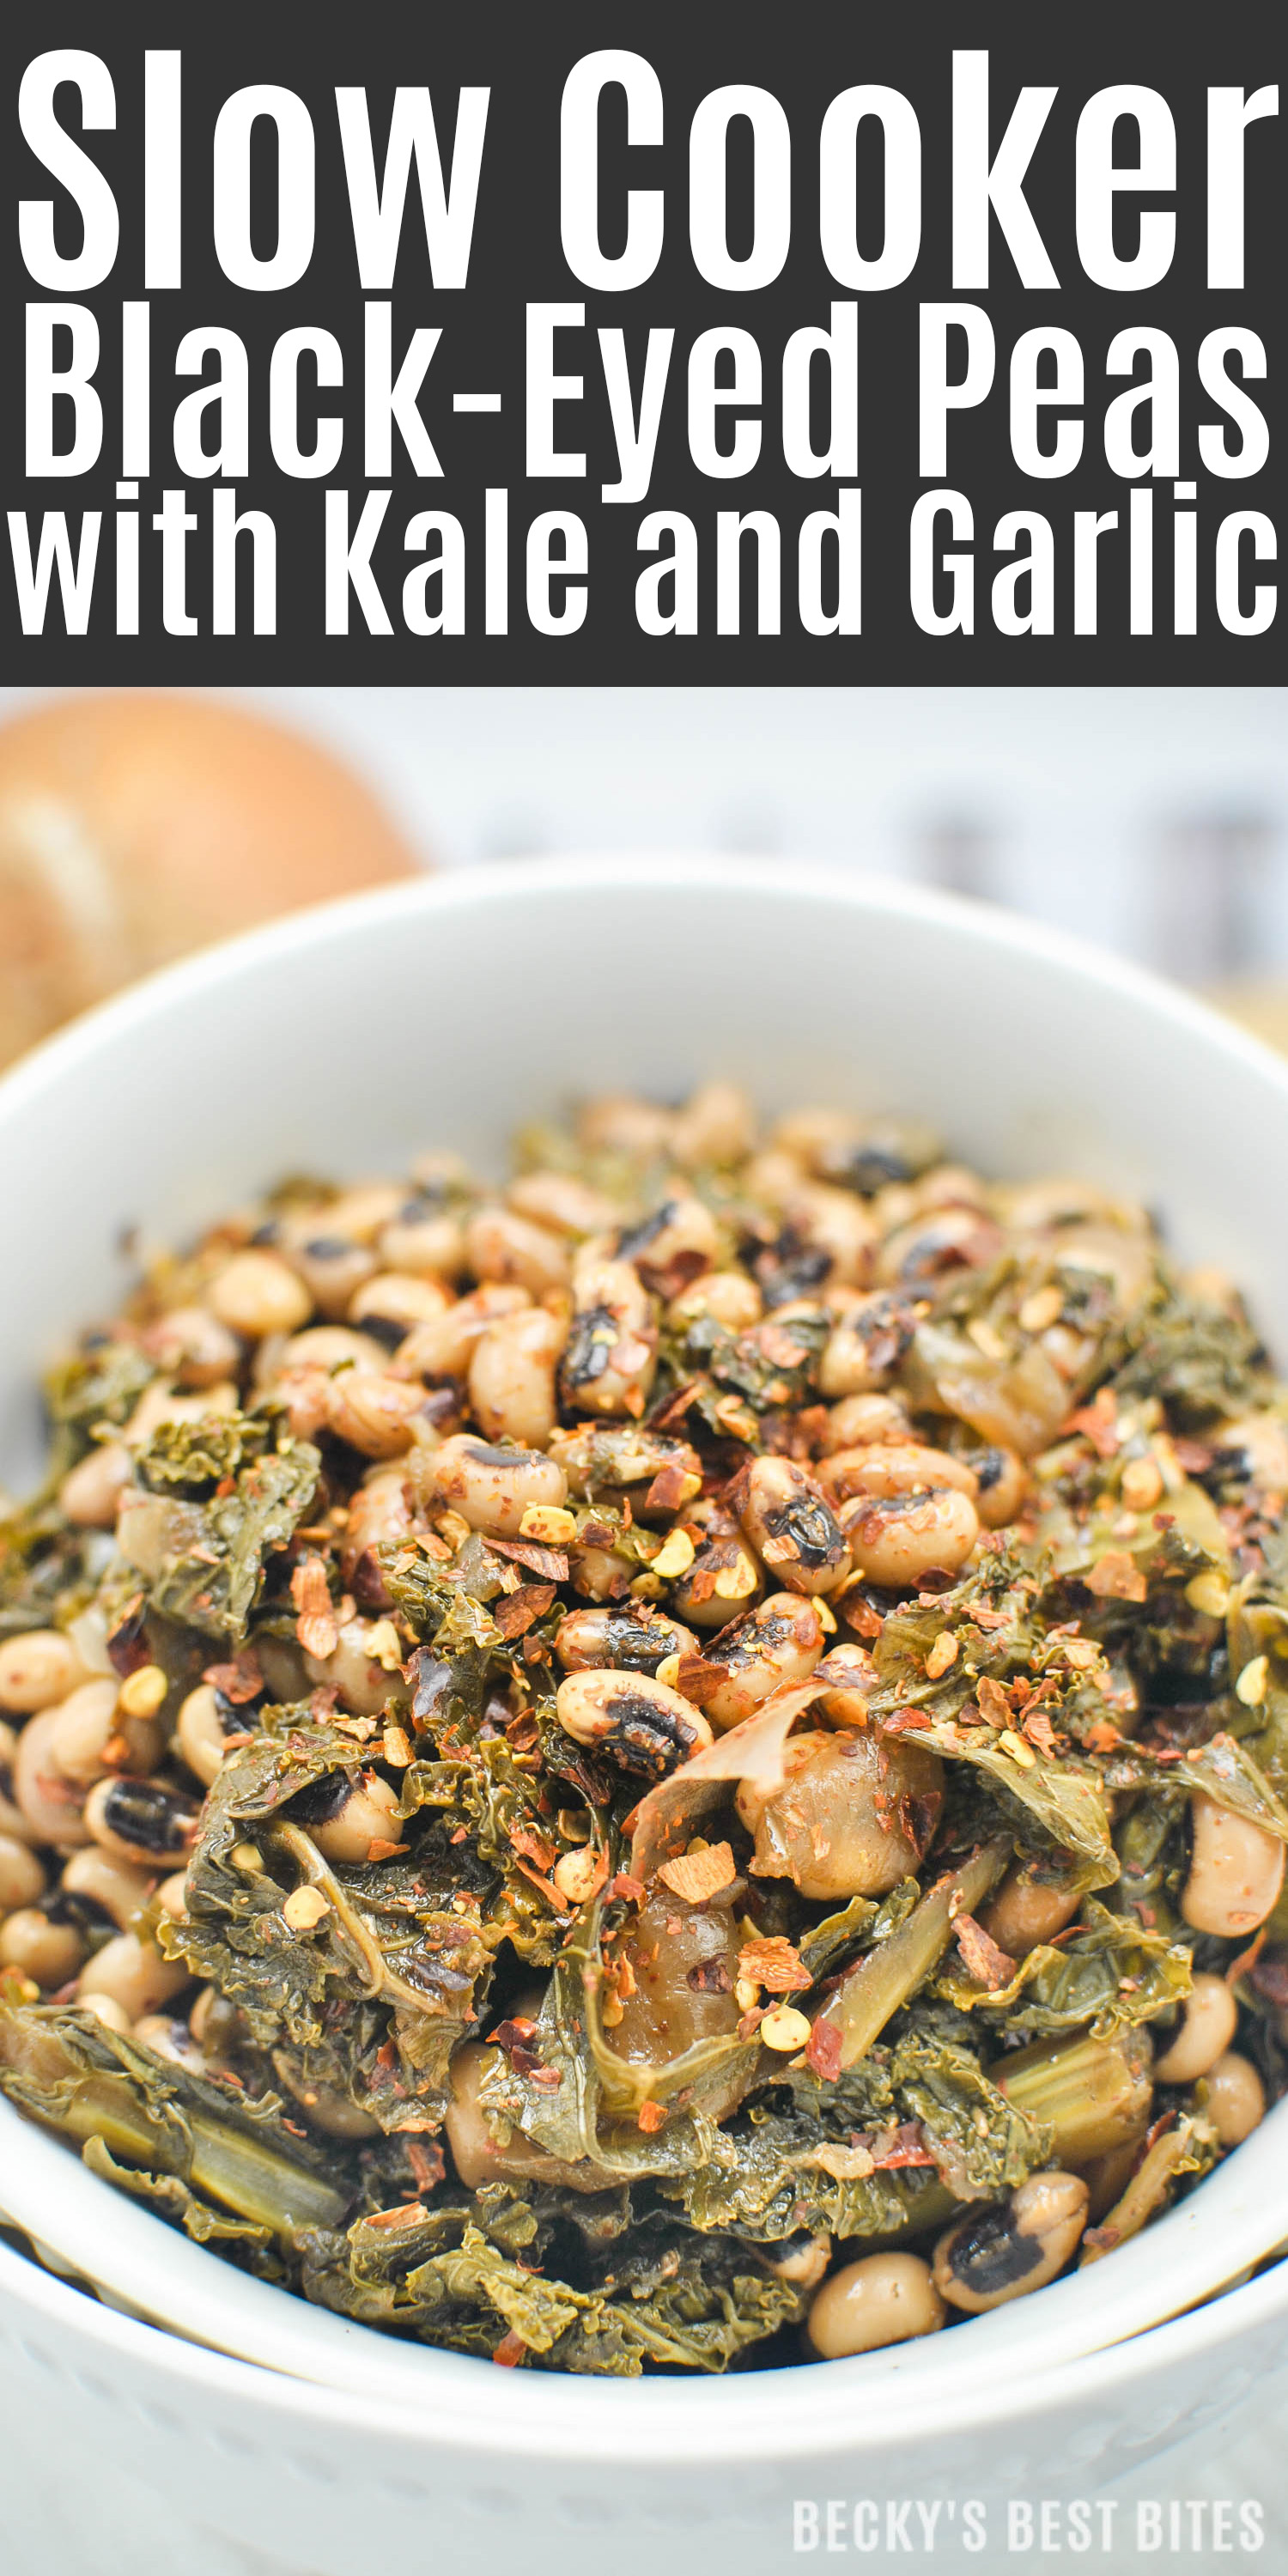 Slow Cooker Black-Eyed Peas with Kale and Garlic is an easy, tasty vegan recipe to kick off your healthy living/eating New Year's resolutions! Serve it as a vegetarian main dish that will satisfy even meat-eaters or hearty side dish to complement grilled meats.| beckysbestbites.com